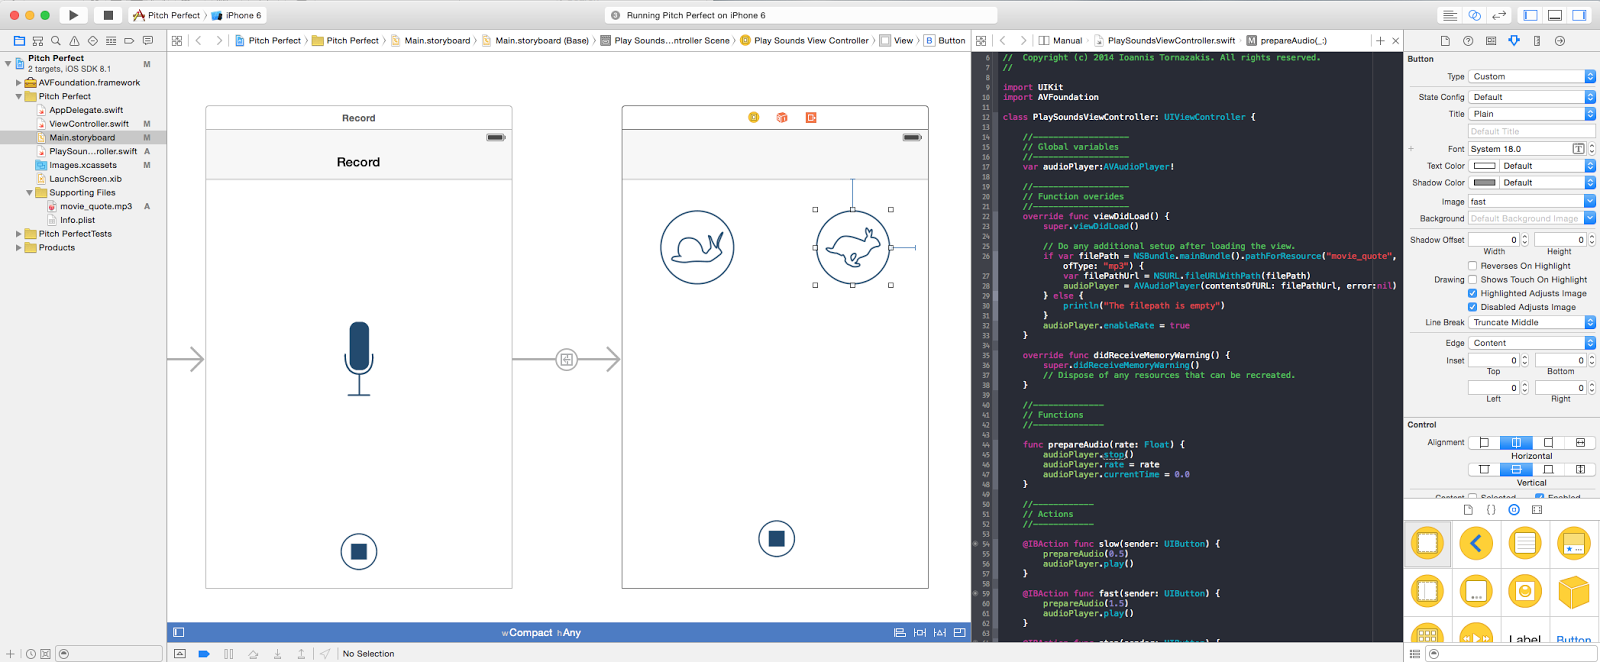 iOS development in swift: What have I learned from